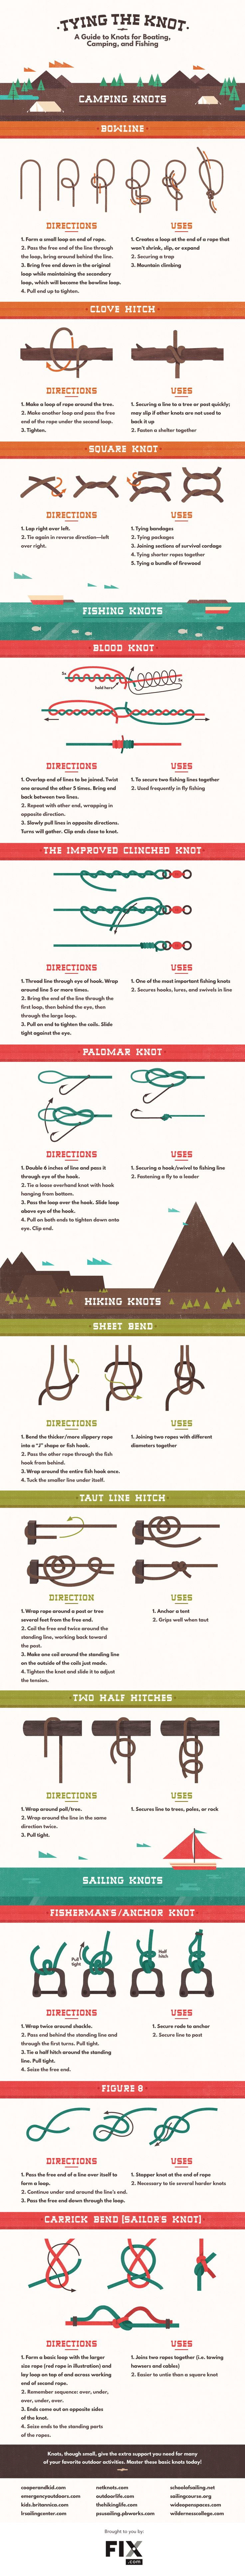 If the only knot you know involves tying your shoes, then this infographic provides clear, step-by-step instructions on tying some of the most useful knots out there.